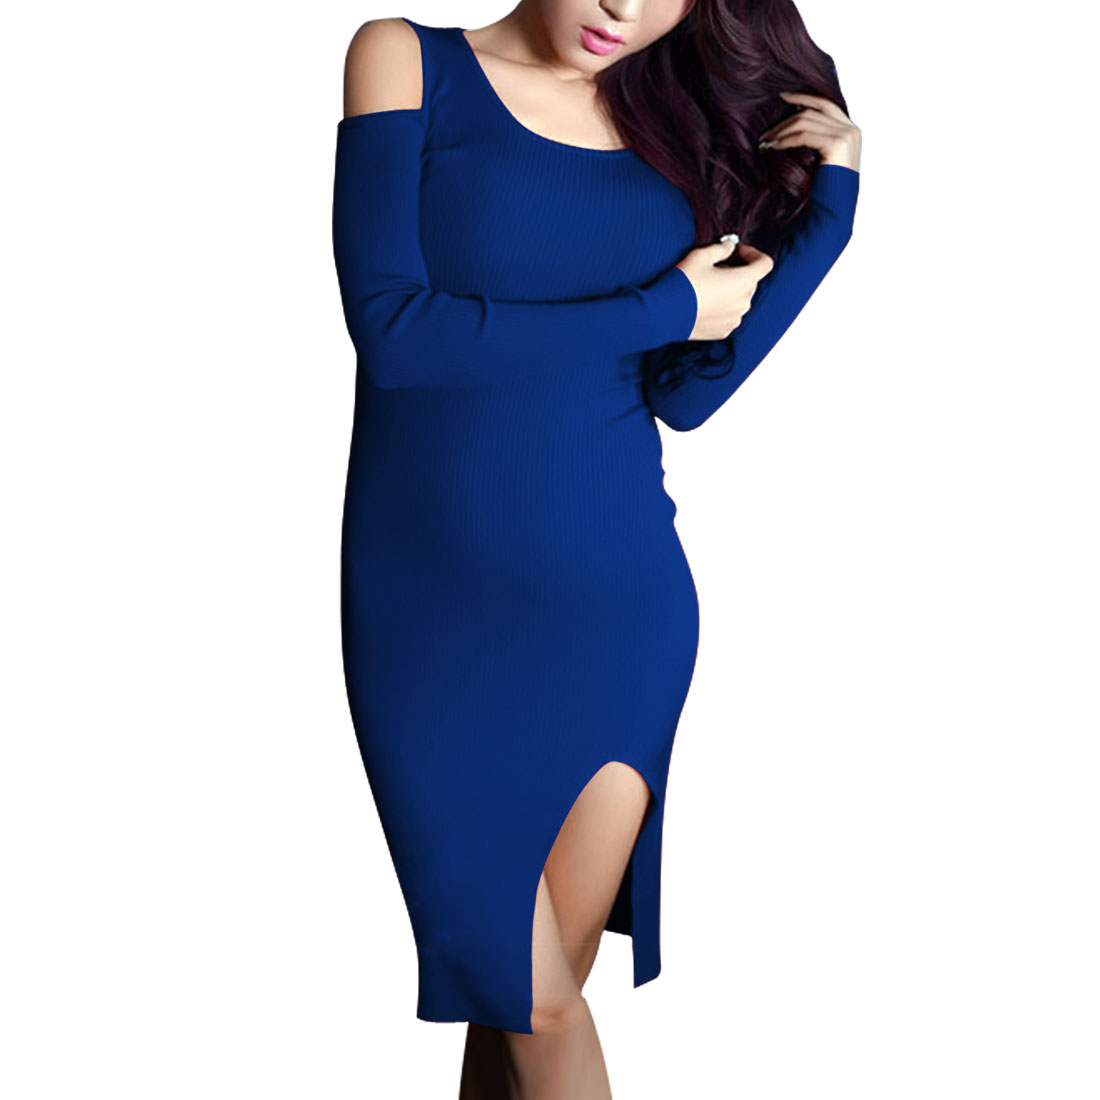 Women Scoop Neck Long Sleeve Slim Fit Knitted Dress Royal Blue XS